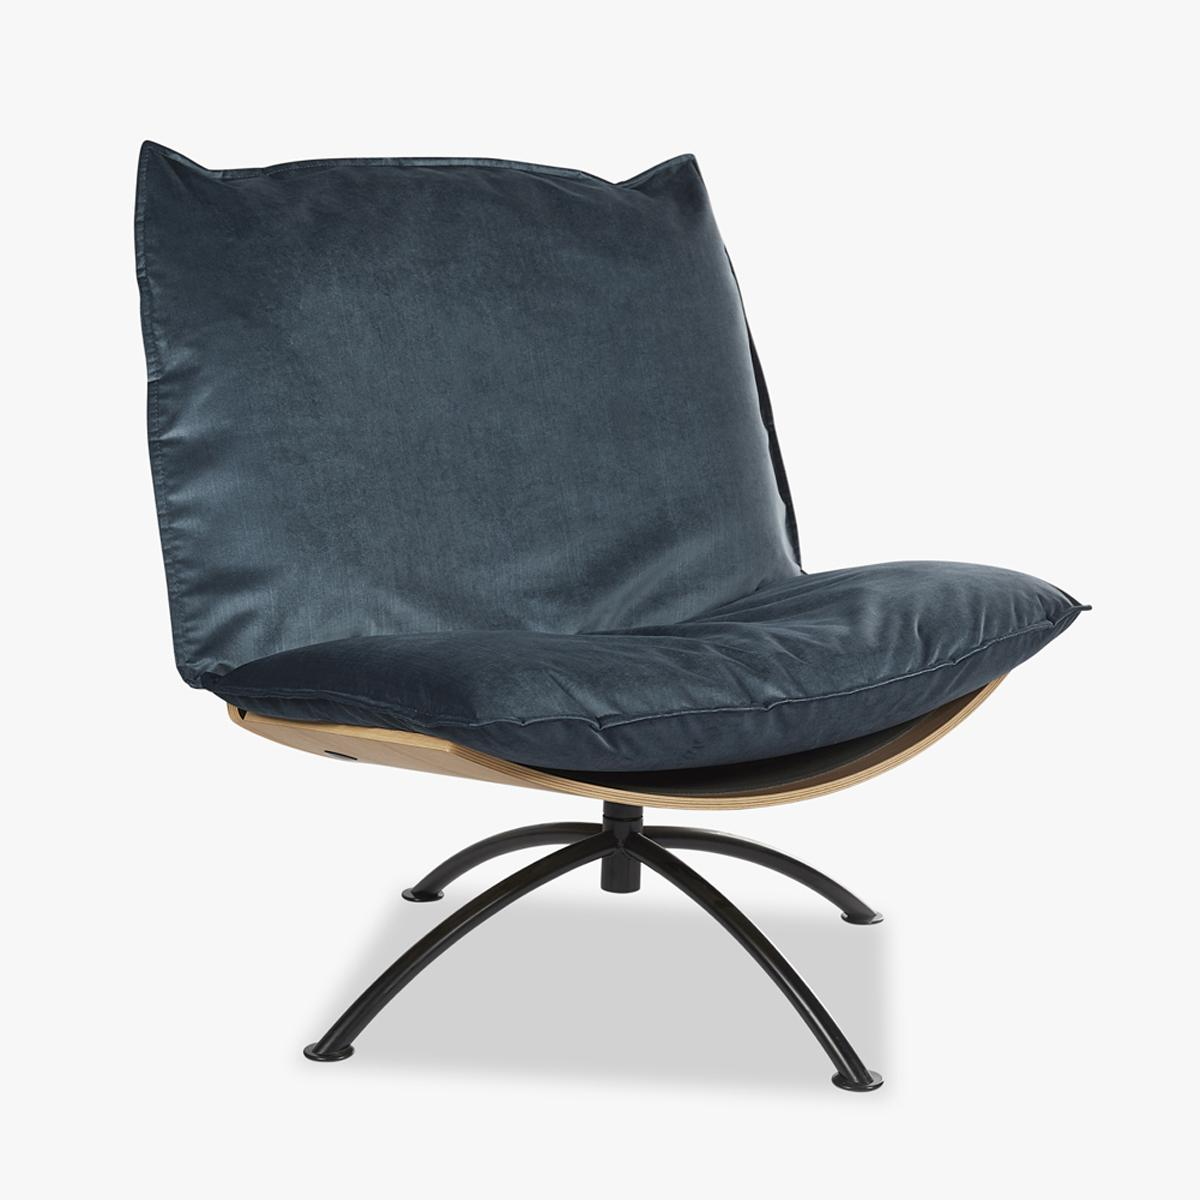 prime-time-easy-chair-walnut-midnight-velvet-5